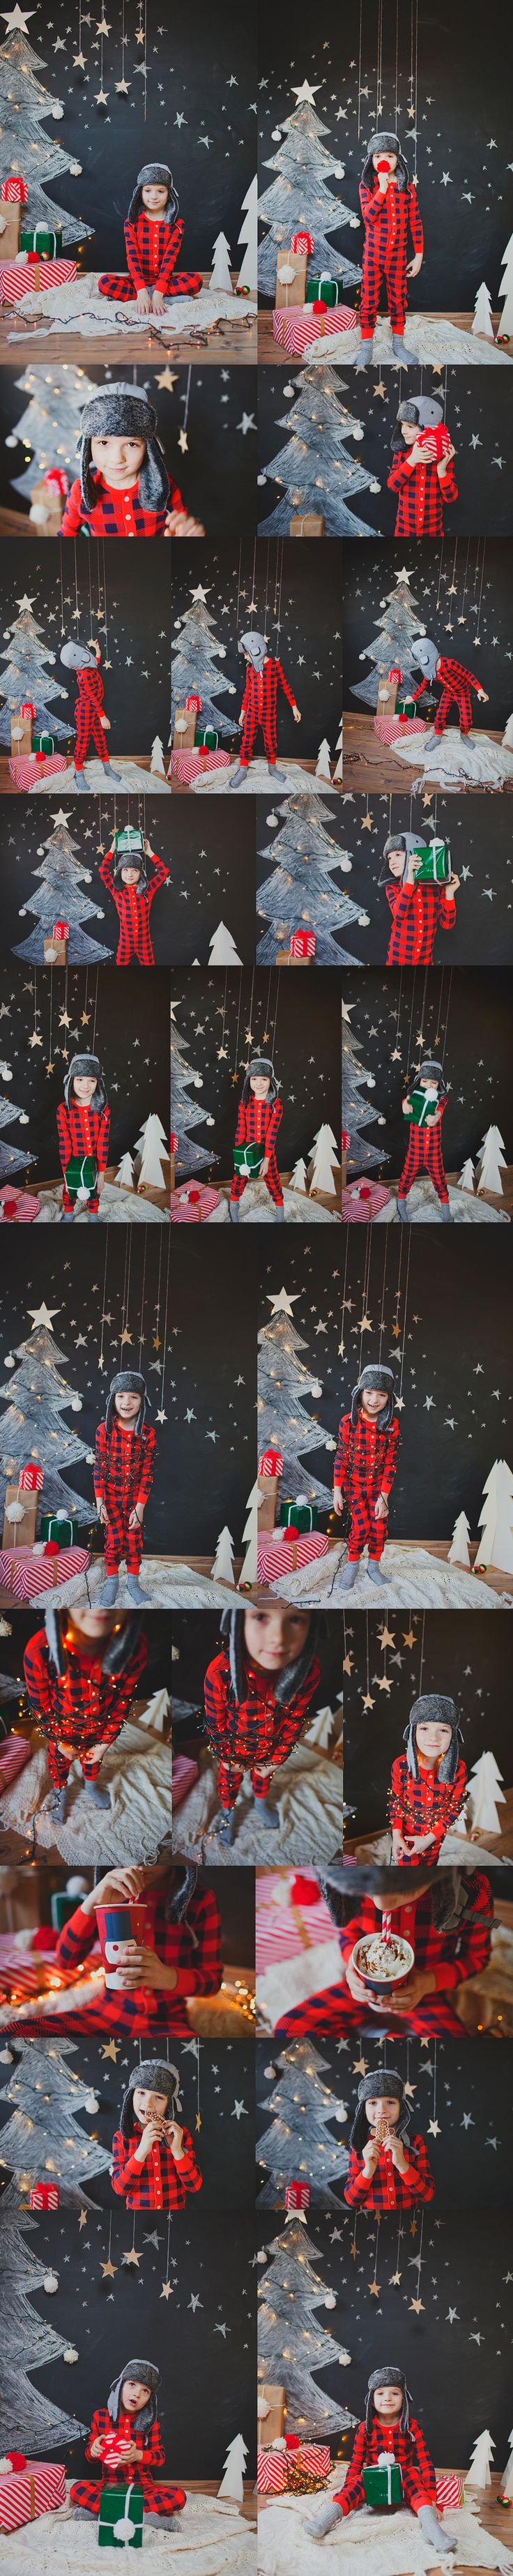 Chalkboard Trees - Perfect backdrop & props for holiday photo. Ideas for family portraits & Christmas cards. Creative twist for annual photo of your kids. DIY keepsakes, decorations, scrapbooking, journaling, photography & party photo booths.